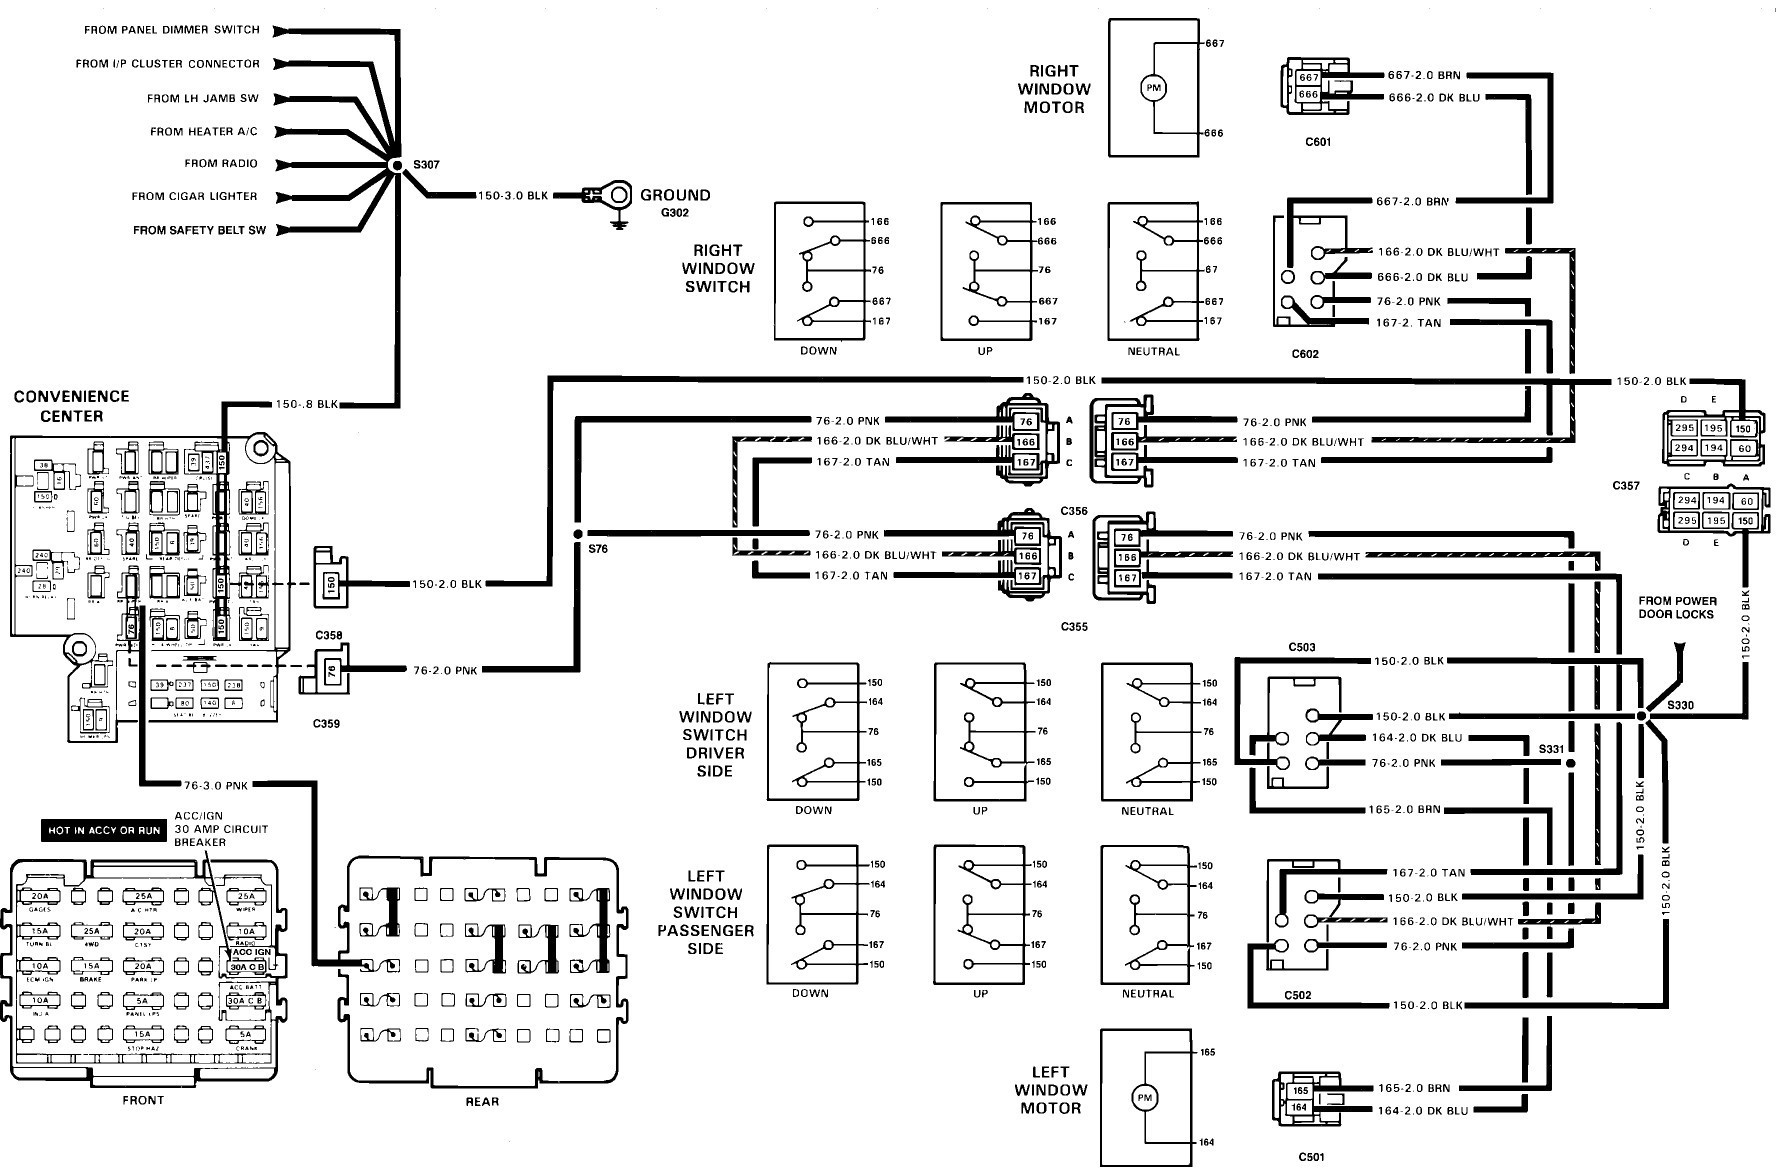 hight resolution of 1991 chevy truck wiring diagram 07 suburban blower motor wiring diagram wiring data of 1991 chevy